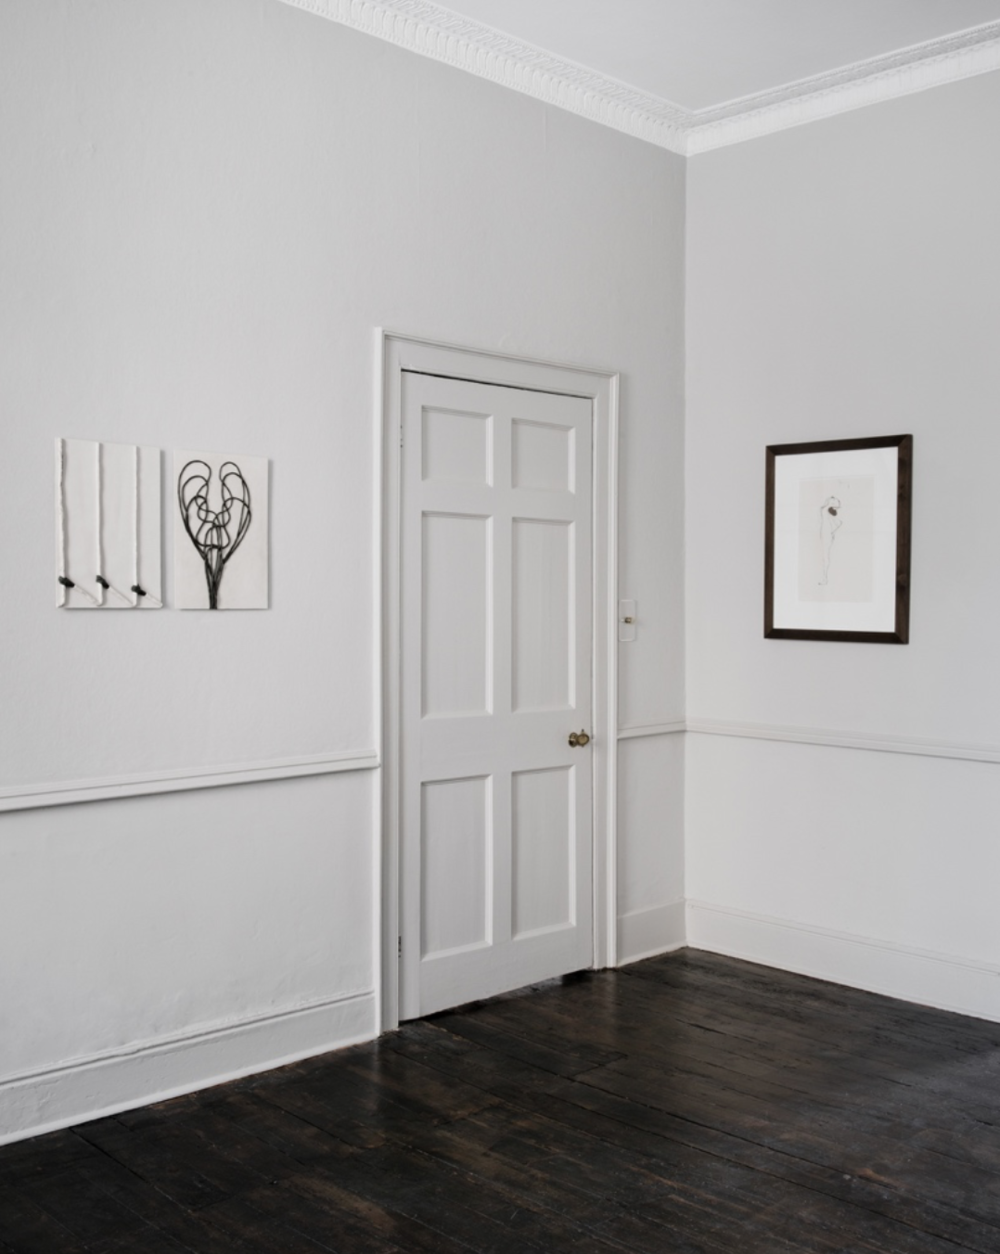 Installation view - Enrico David